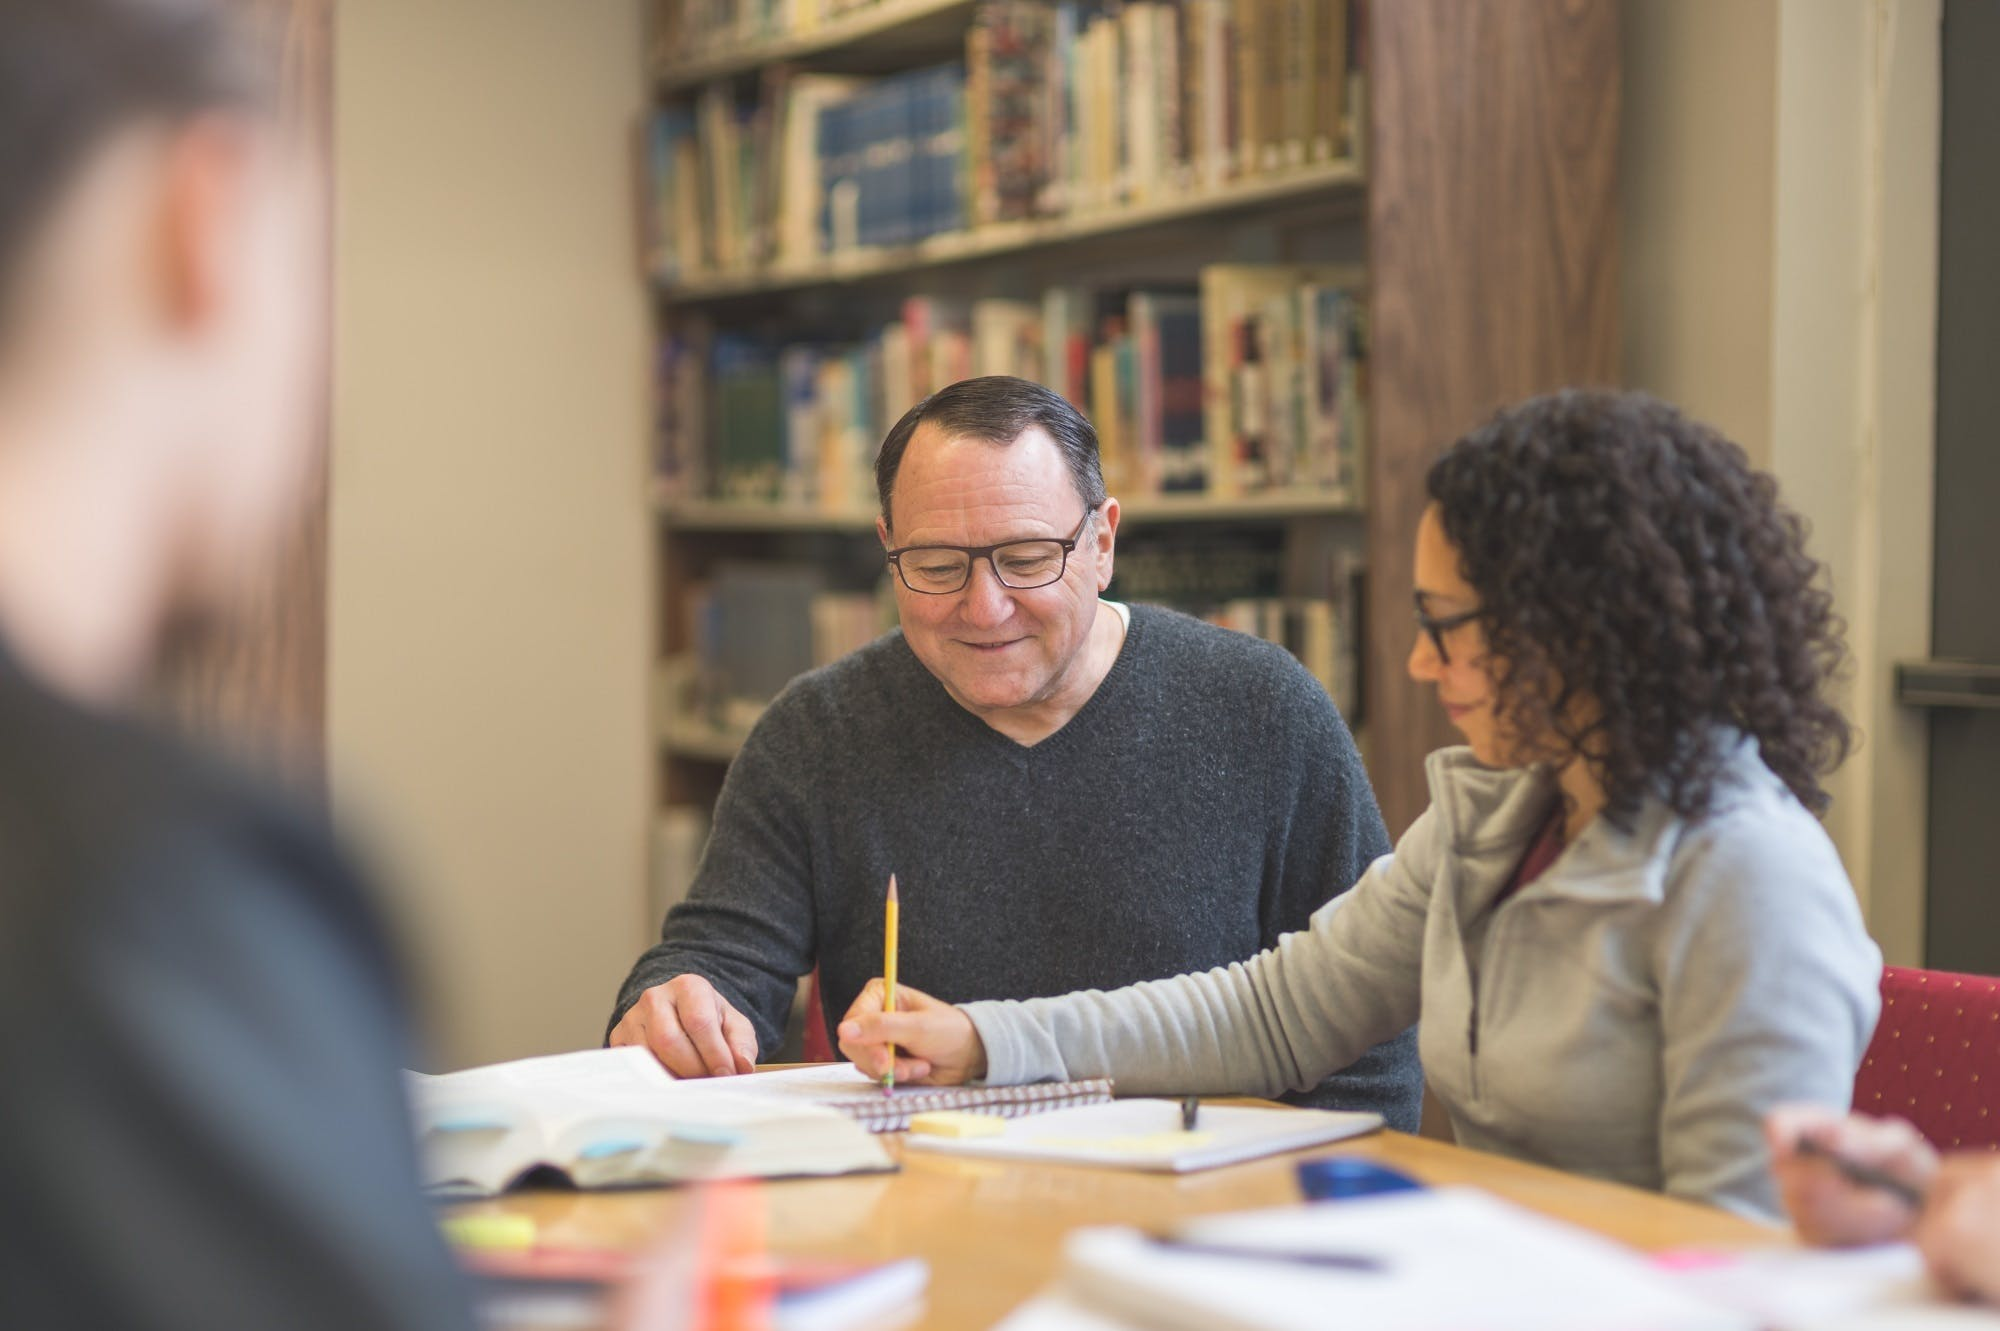 Study Session In Library Istock 846556004